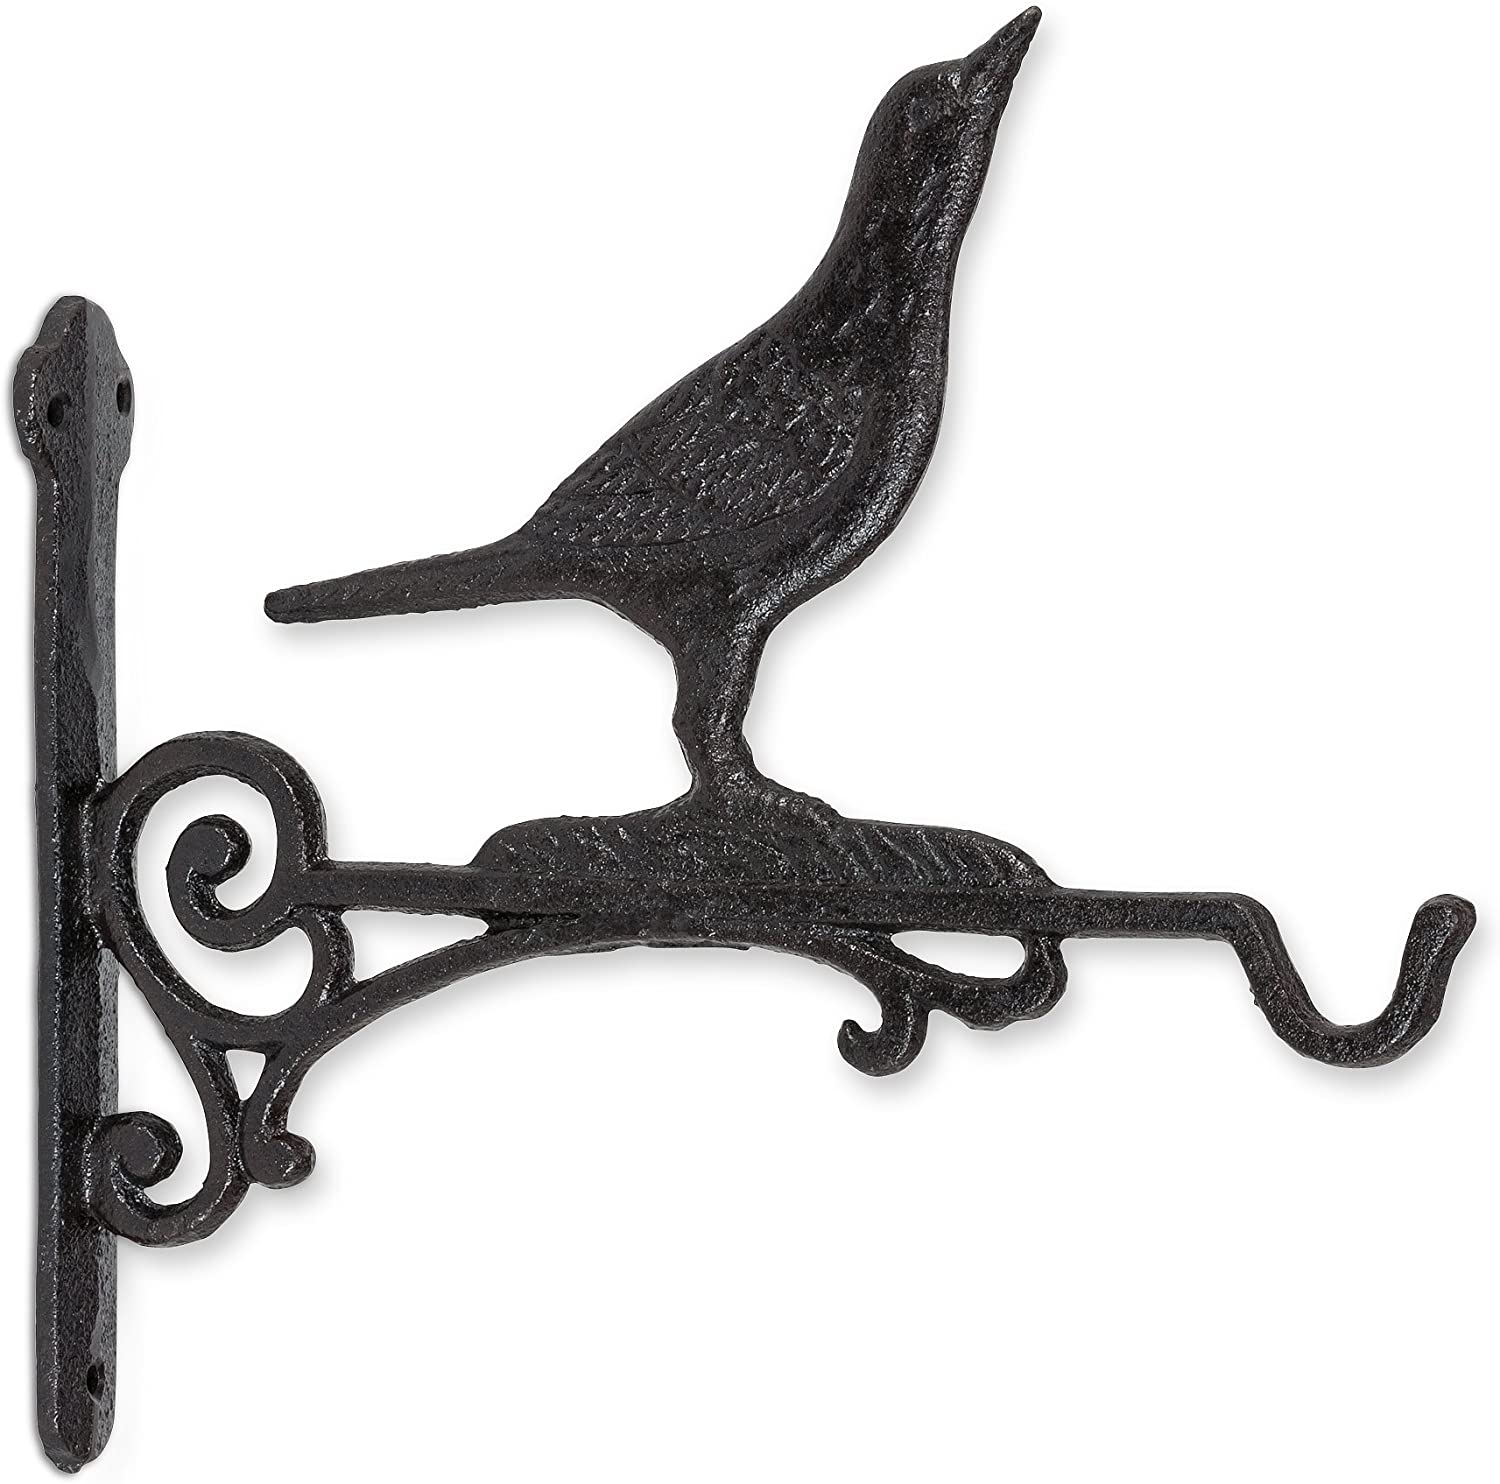 CAST IRON BIRD HOOK/HANGER